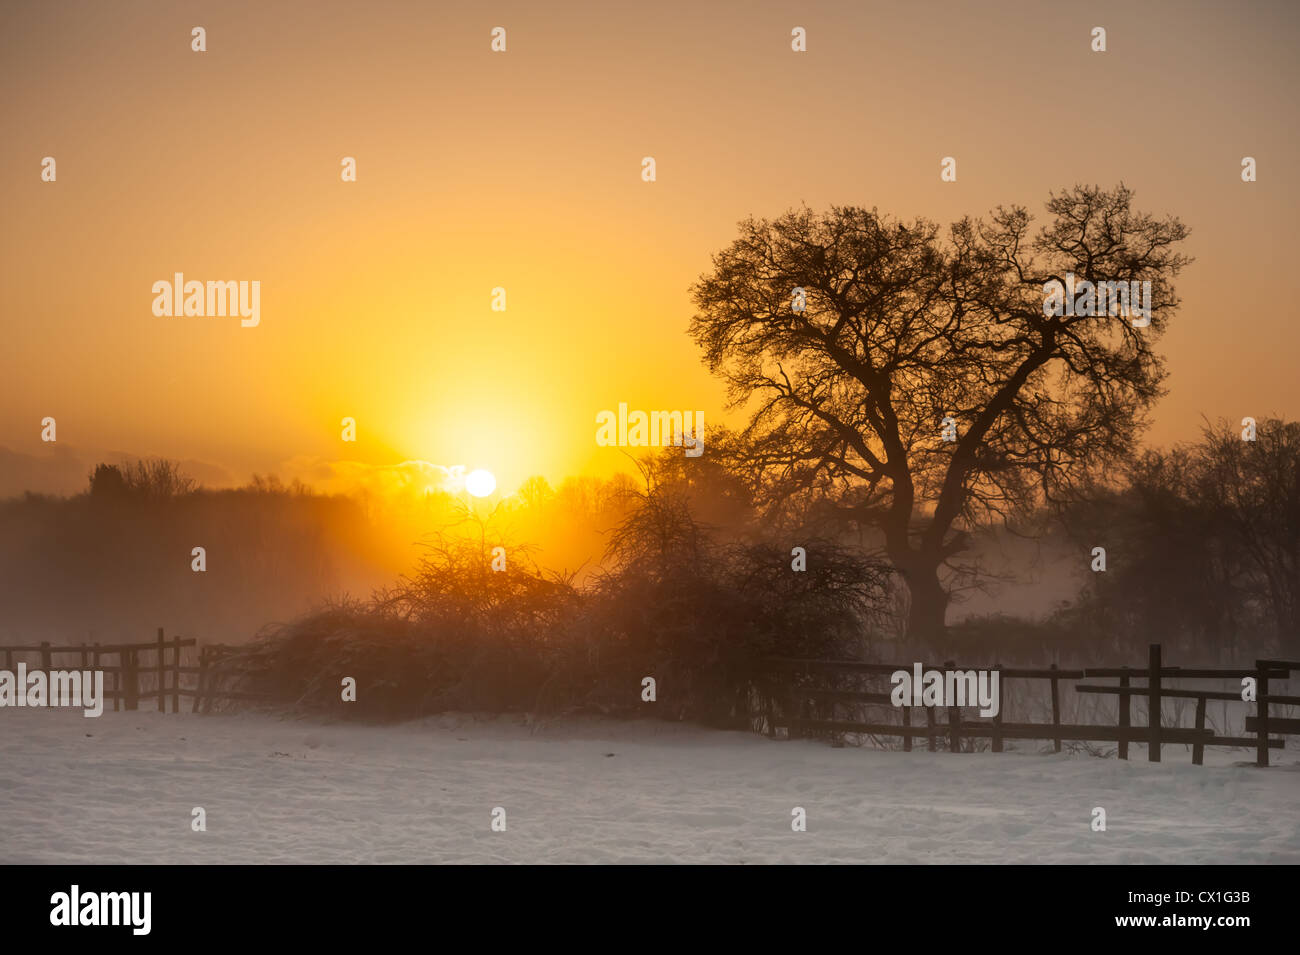 A_Winter_sunrise_over_a_snowy_misty_Brit